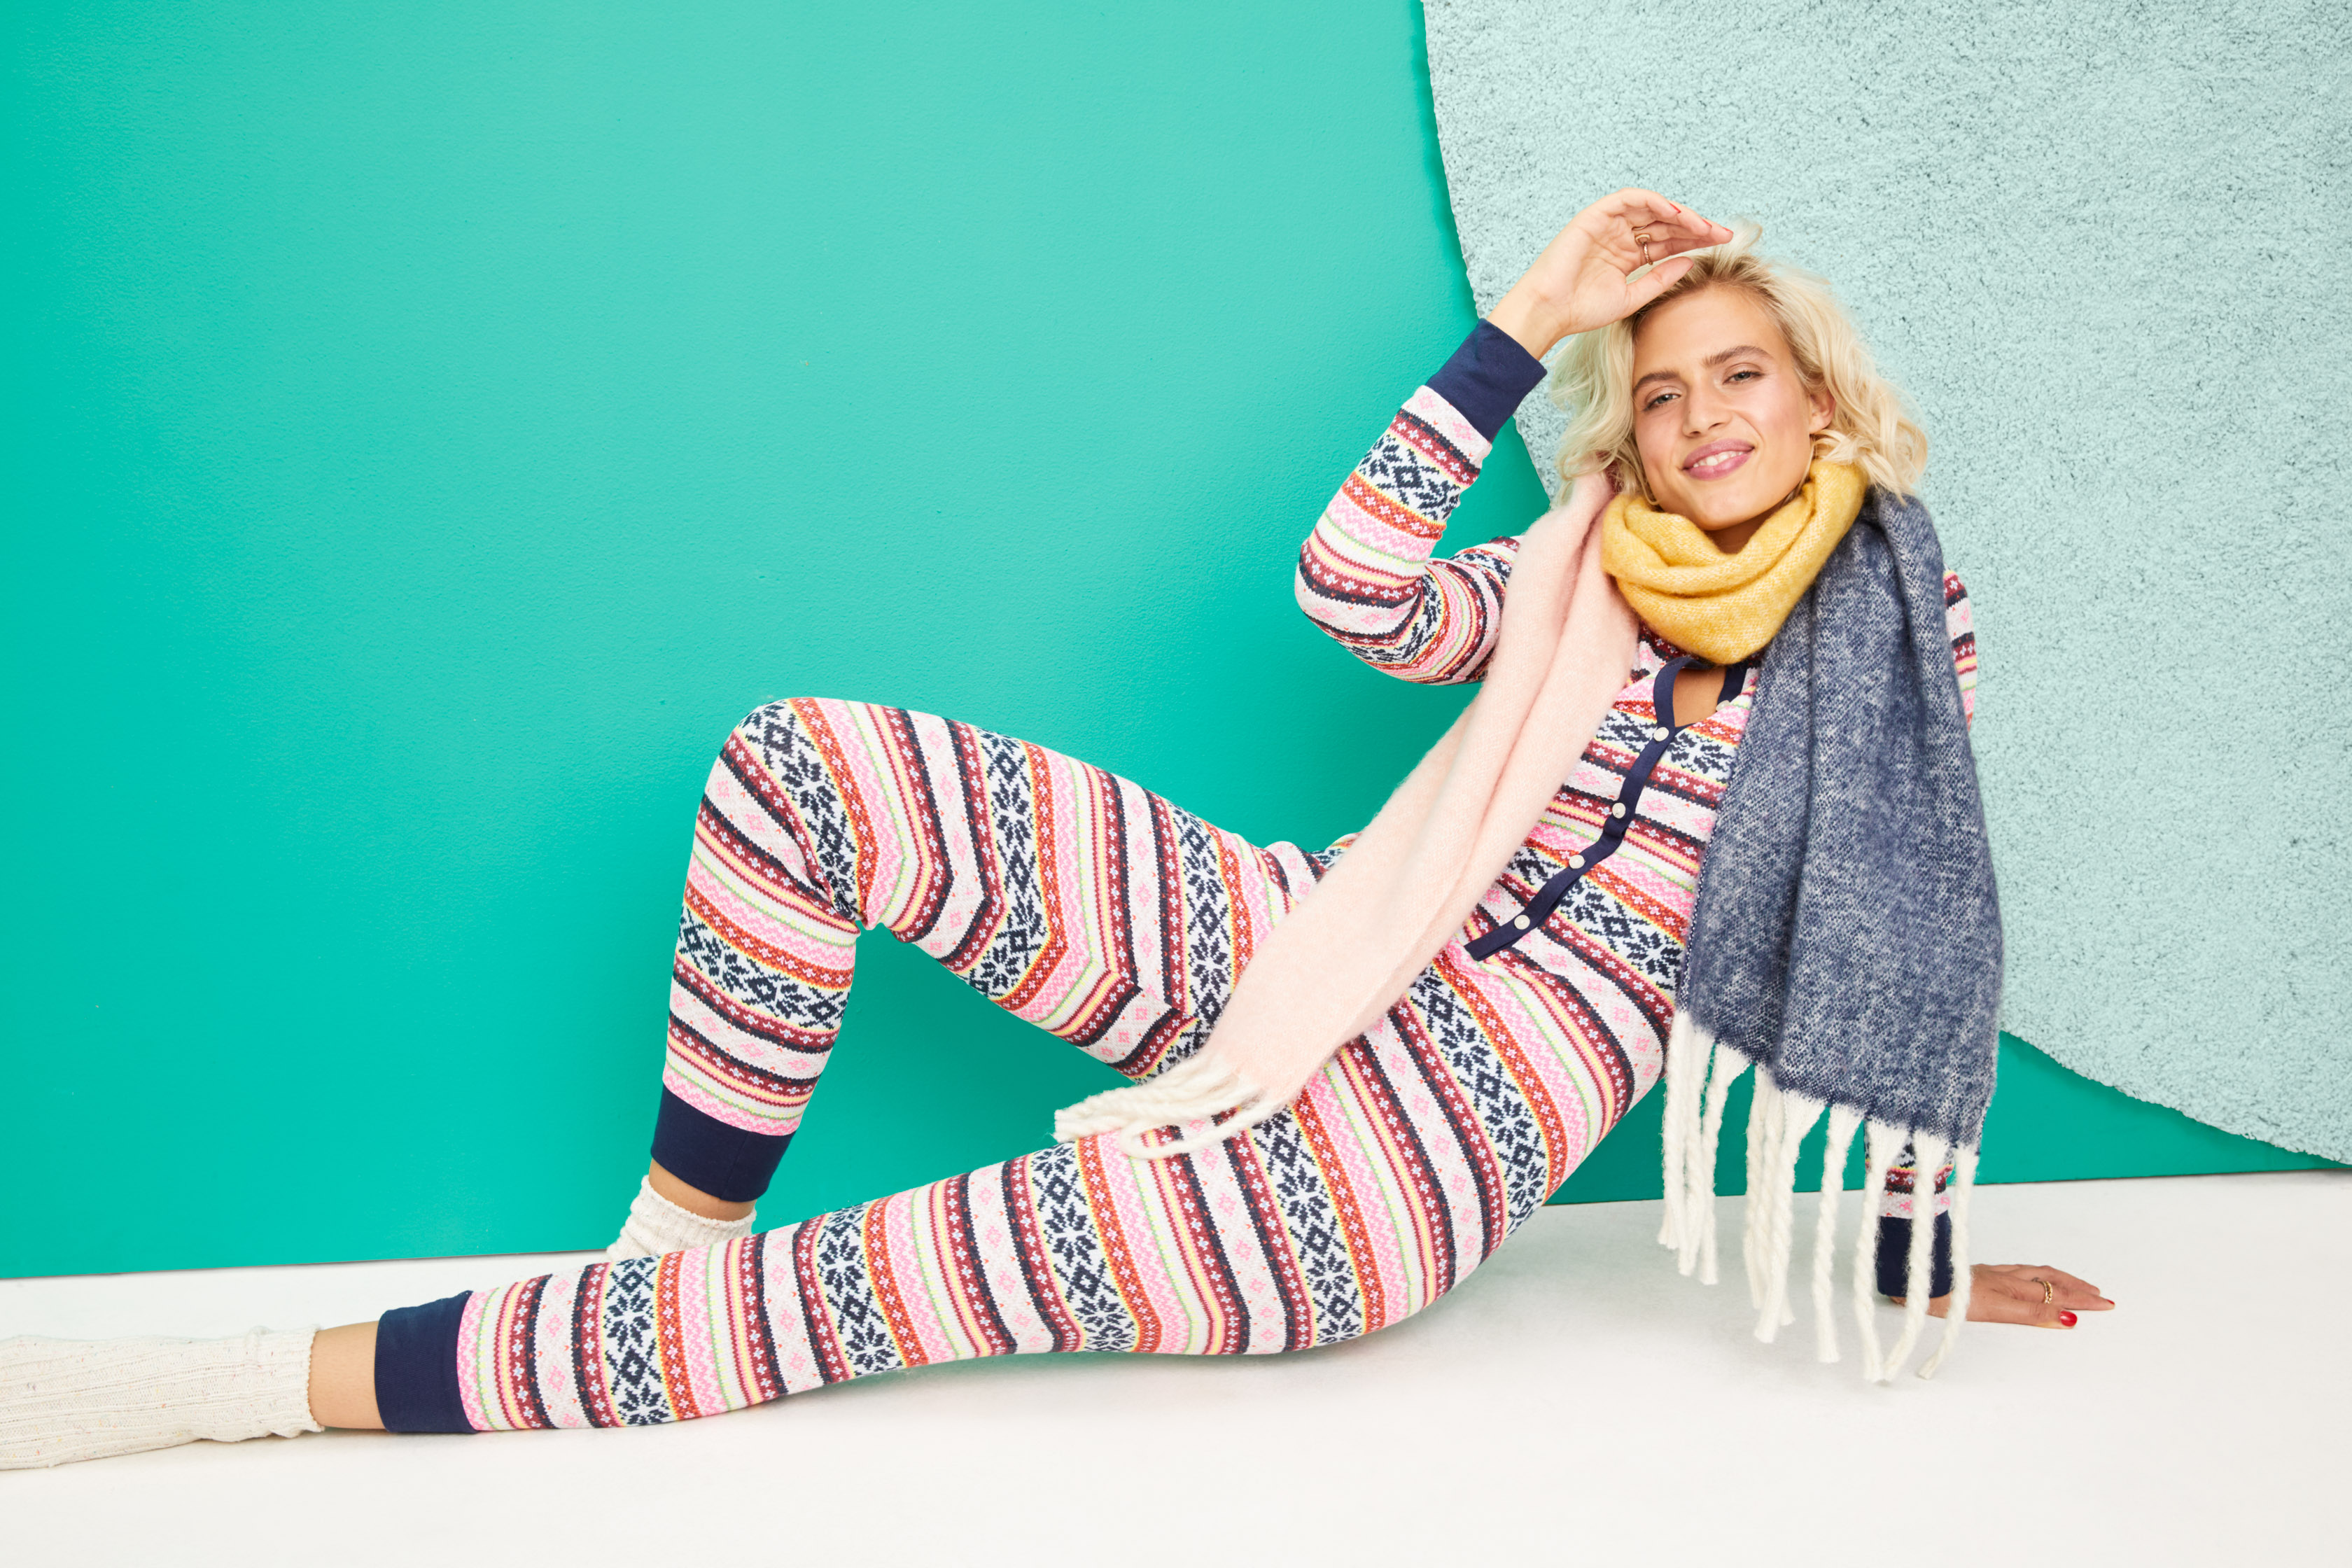 "<p>An excuse to wear a onesie, am I right? $44.99{&nbsp;}{&nbsp;}<a  href=""https://oldnavy.gap.com/browse/product.do?pid=609813082&cid=1144513&pcid=1143966&vid=1&grid=pds_89_209_1#pdp-page-content"" target=""_blank"" title=""https://oldnavy.gap.com/browse/product.do?pid=609813082&cid=1144513&pcid=1143966&vid=1&grid=pds_89_209_1#pdp-page-content"">Shop this look</a>.{&nbsp;} (Image: Old Navy){&nbsp;}</p>"